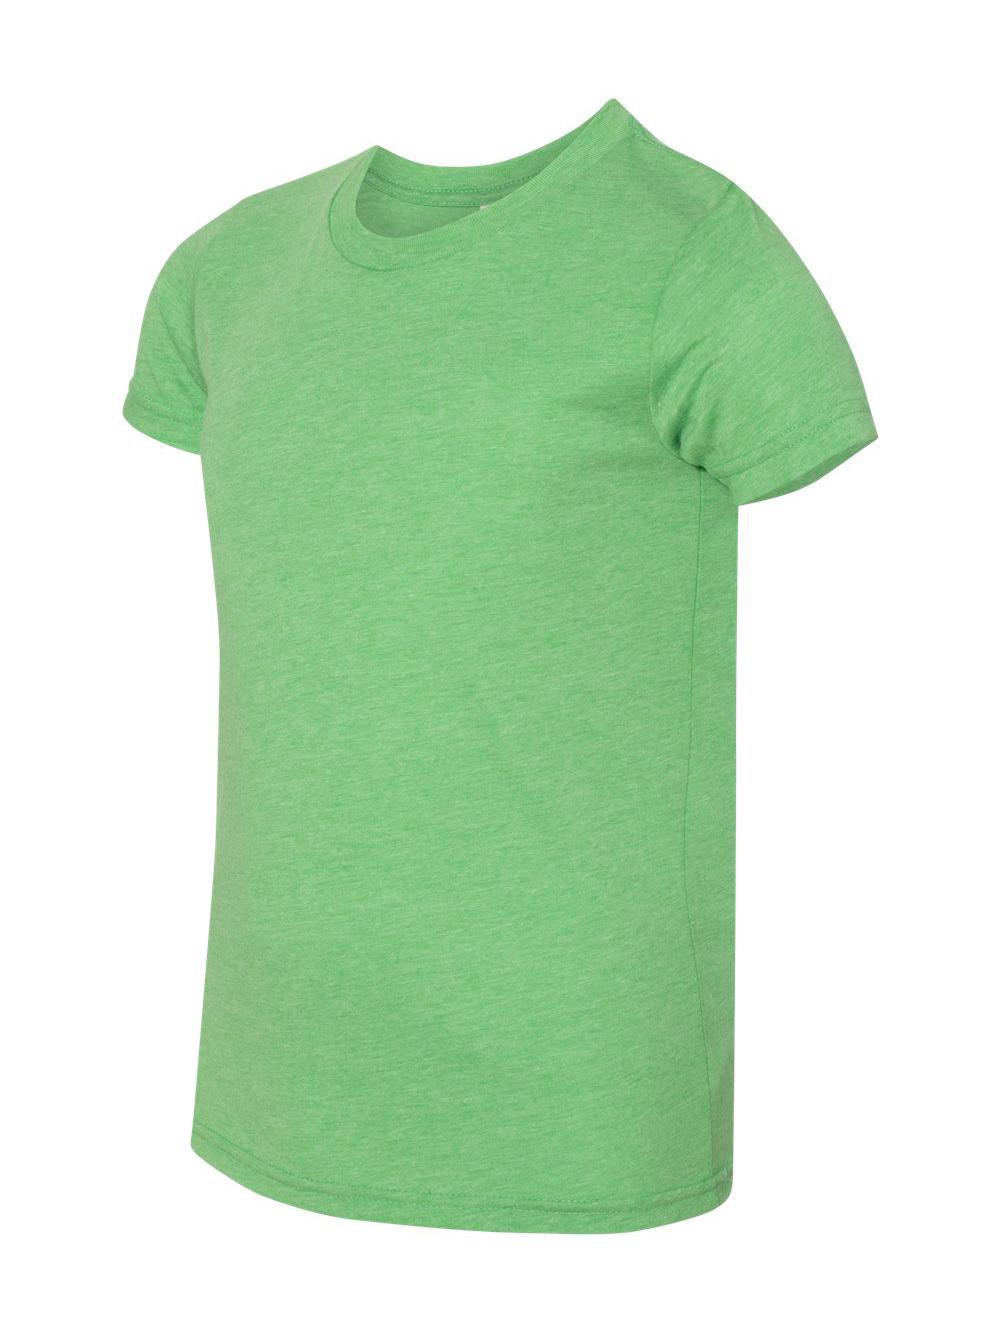 Bella + Canvas T-Shirts Youth Triblend Jersey Short Sleeve Tee